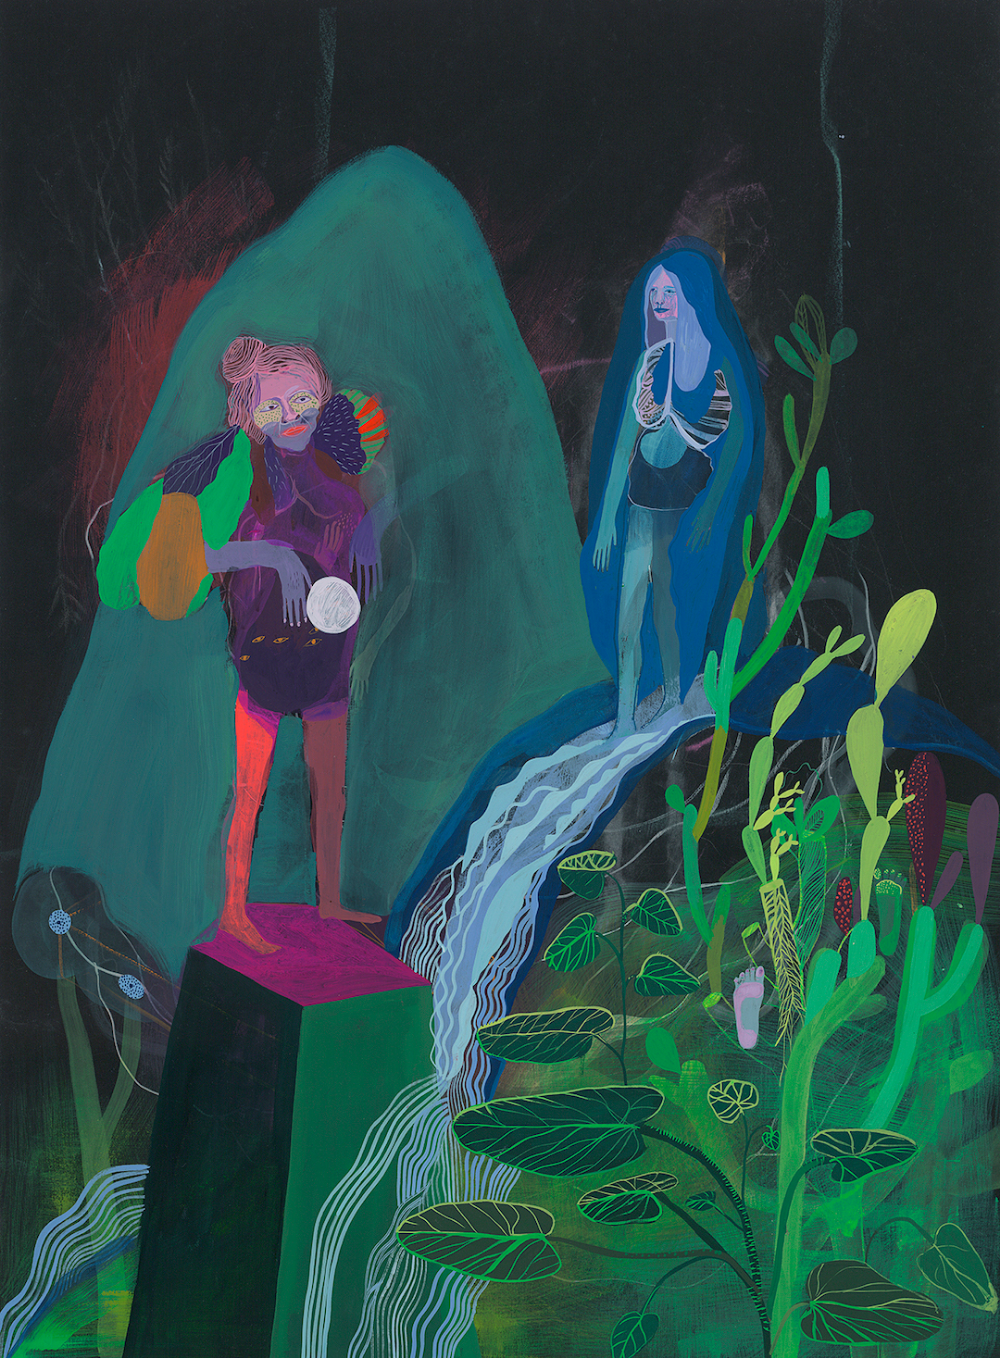 Betsy Walton Finds a Mindful Flow Through Colorful